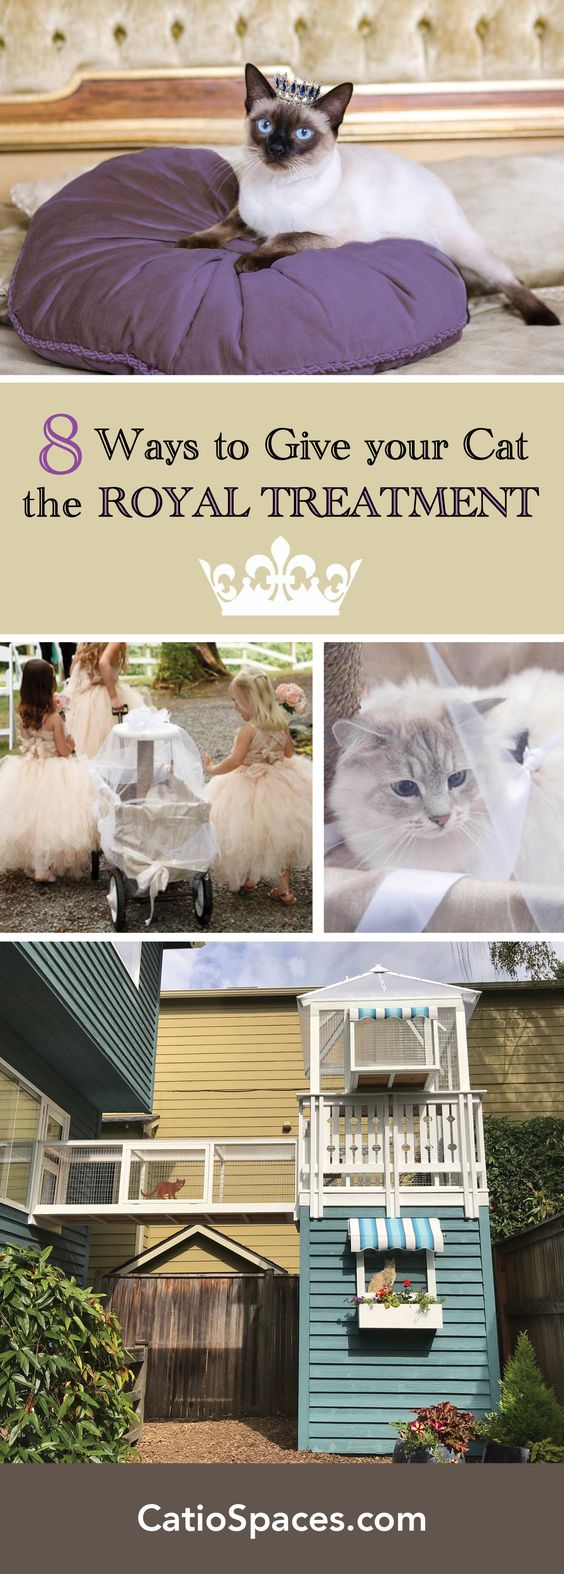 Throughout history, cats have been worshipped, treated like royalty and commanded our attention. Discover 8 ways to pamper your own cat. #catroyalty #catenrichment #catwedding #catio #catenclosure #catpatio #diycatio #diycatenclosure #diycatpatio #buildacatio #buildcatenclosure #buildcatpatio #catprojects #catdiyprojects